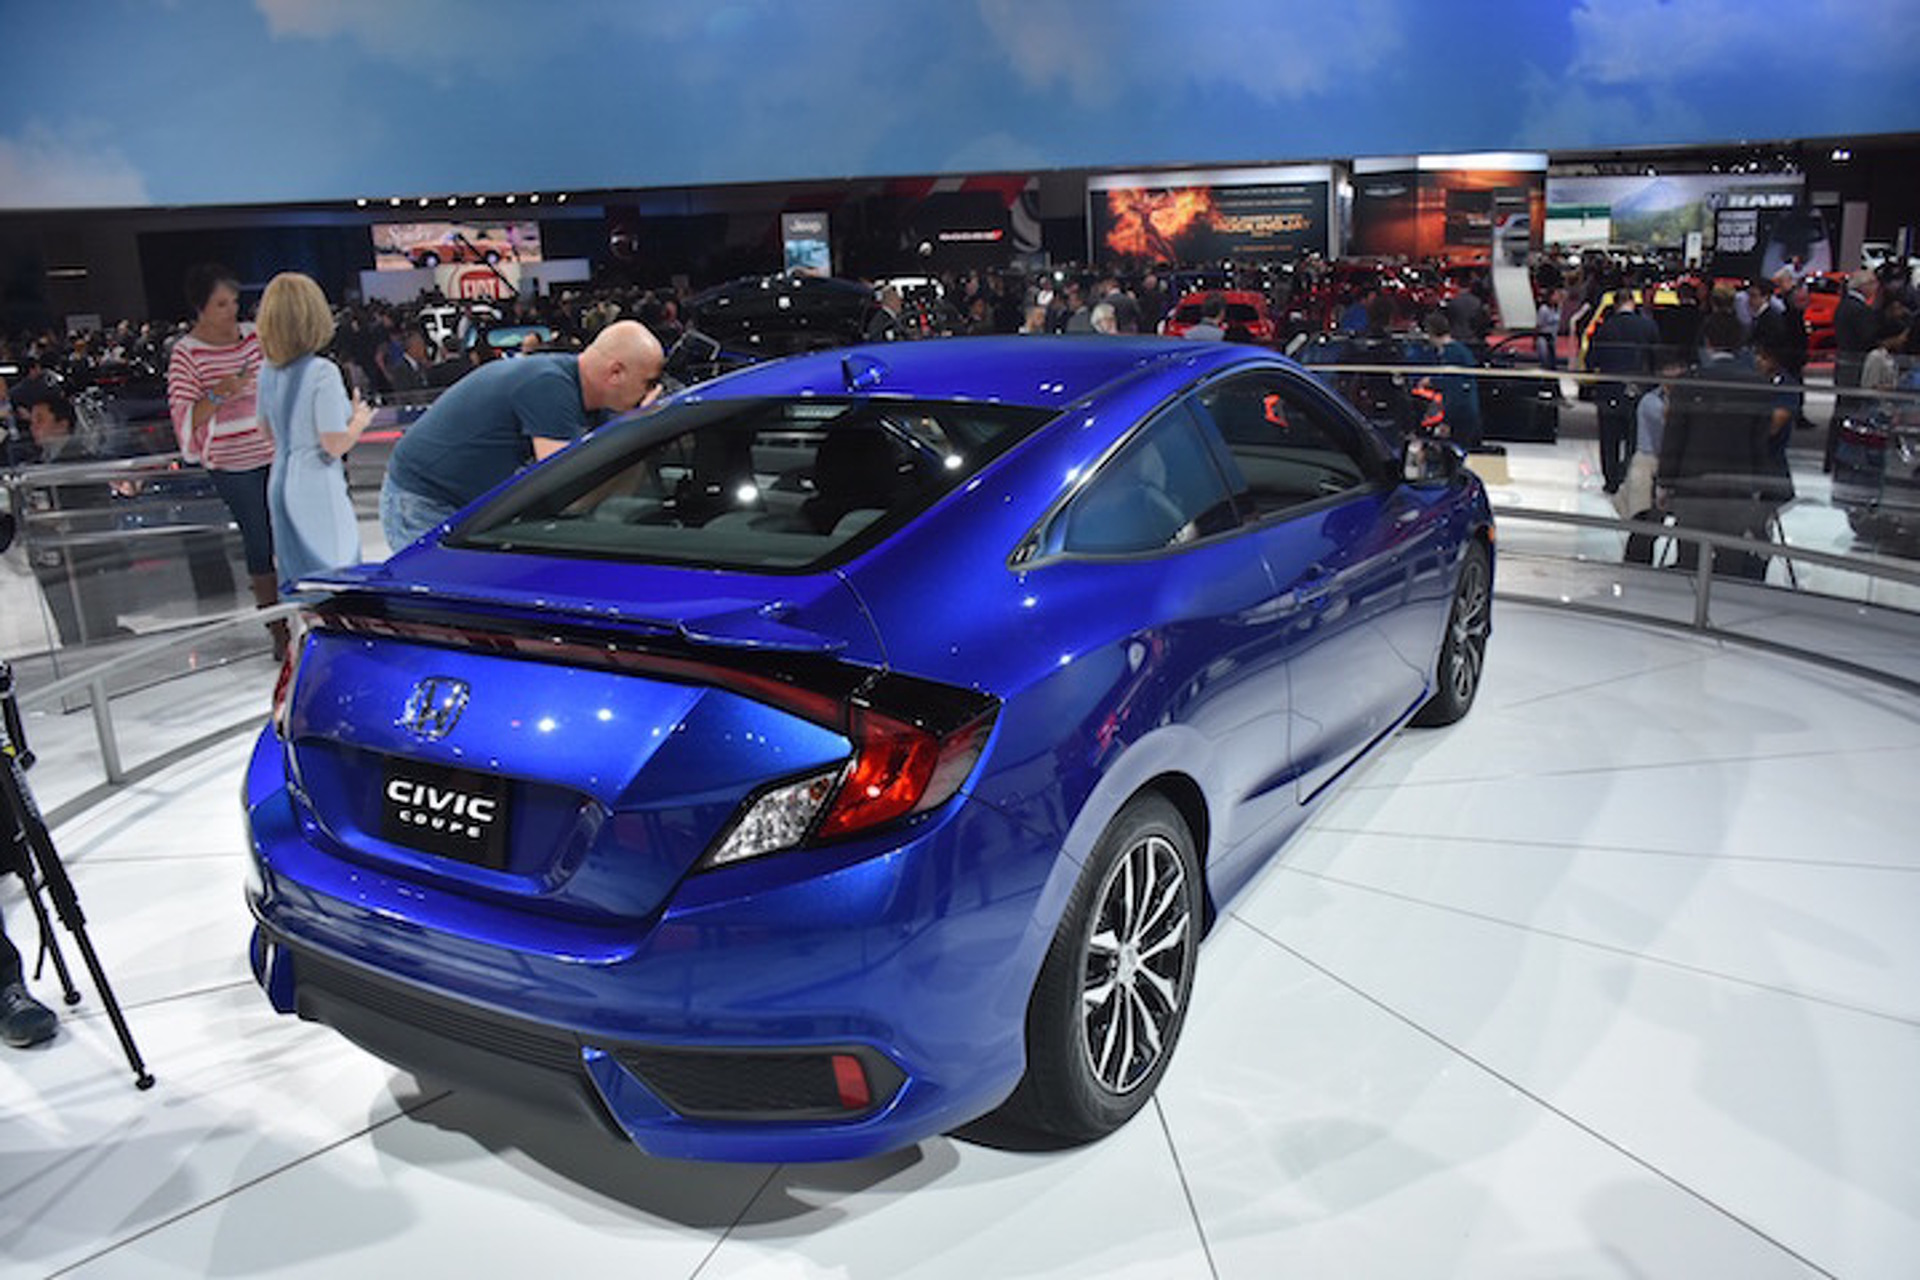 Honda Civic Coupe Bows in Blue at LA Auto Show